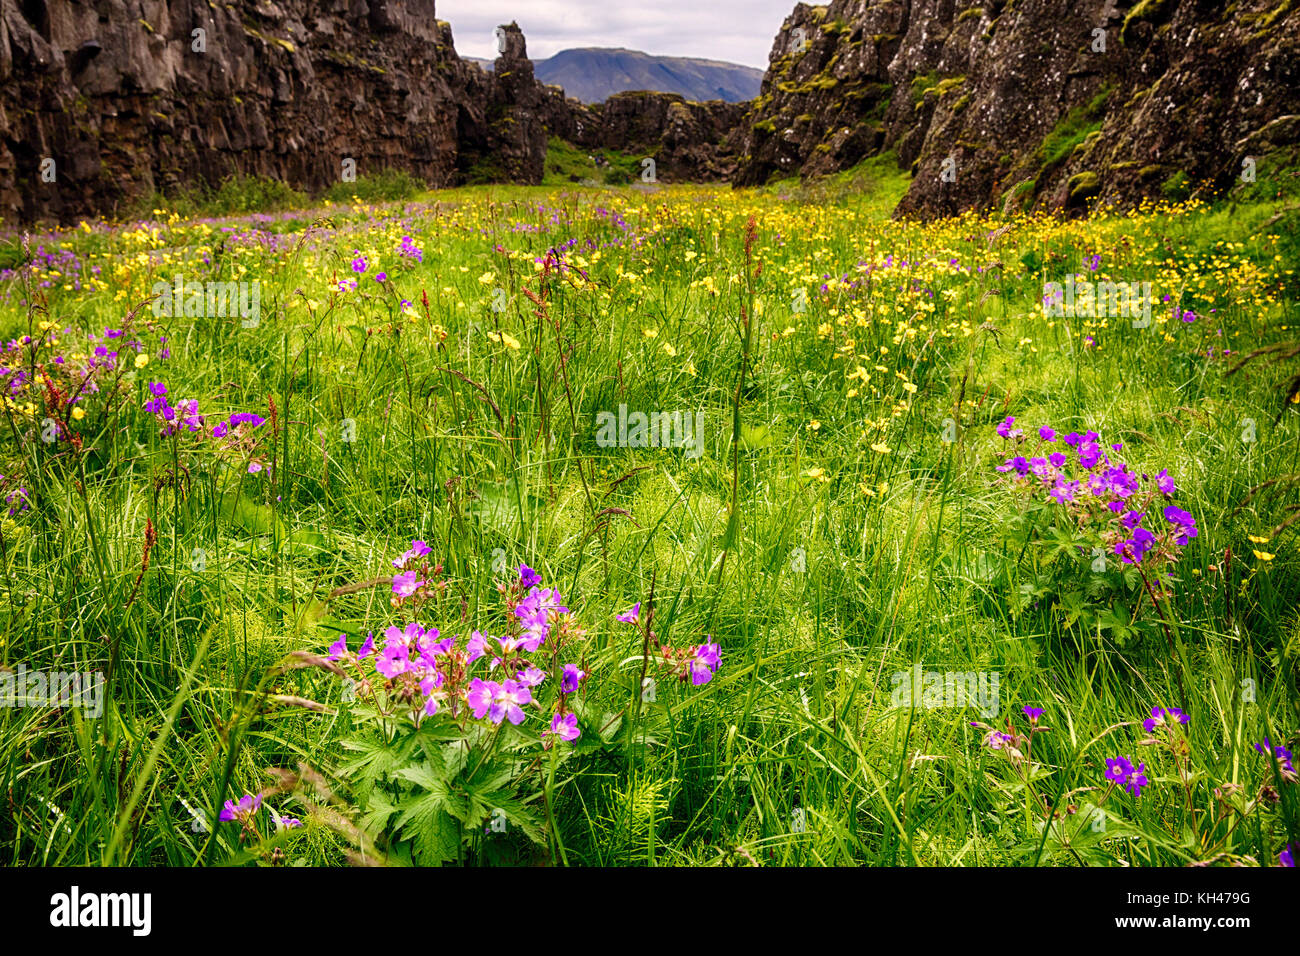 Low Angle View of a prairie en un défaut de fleurs de fleurs sauvages, le Parc National de Thingvellir, Islande Photo Stock